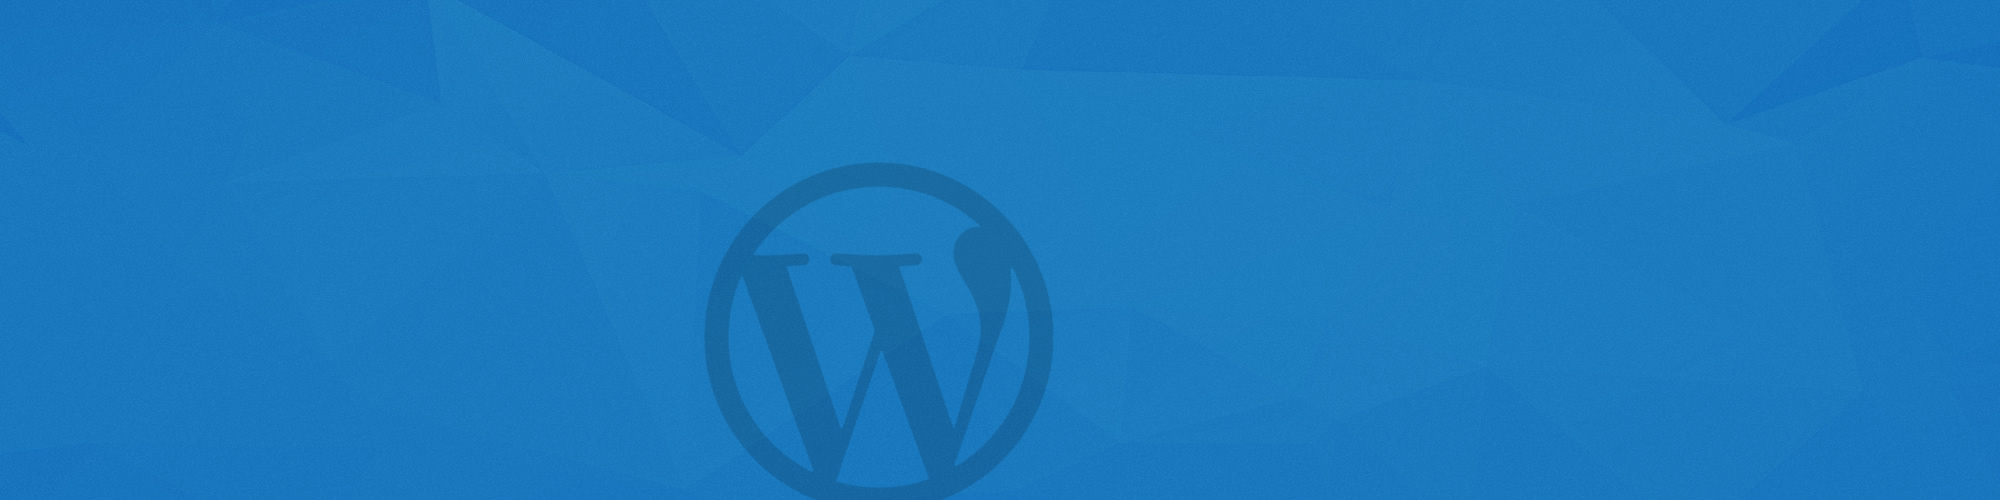 motto wordpress